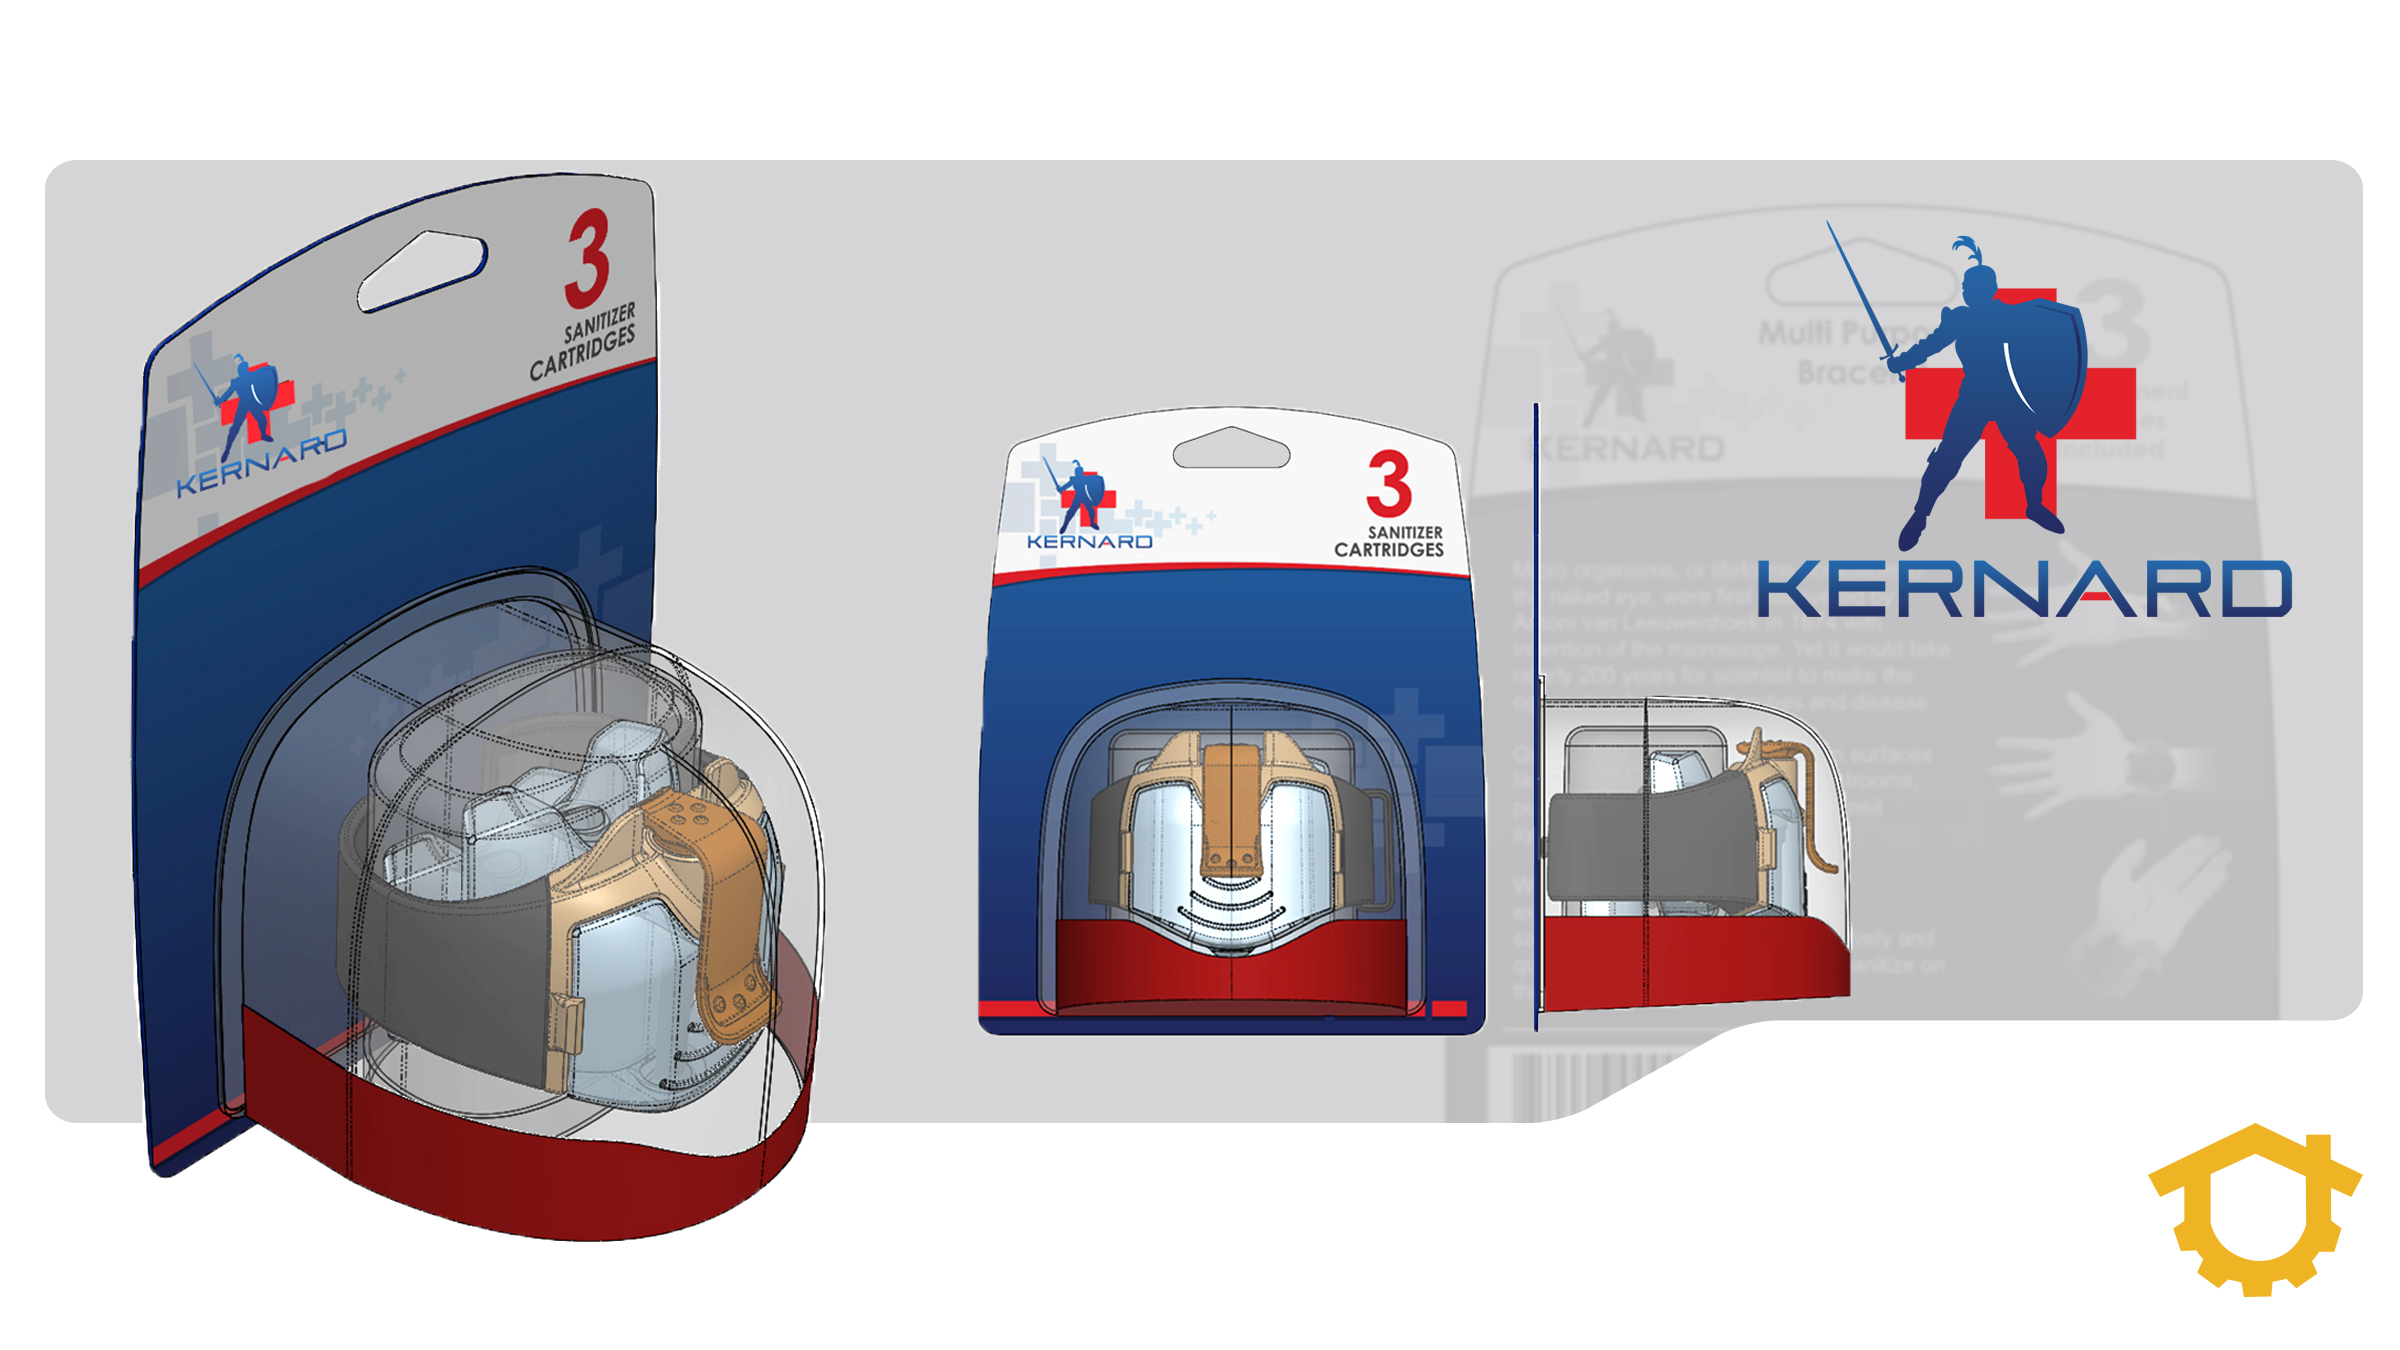 Packaging design may be one of the most important elements. This image shows some packaging we designed for Kernard.